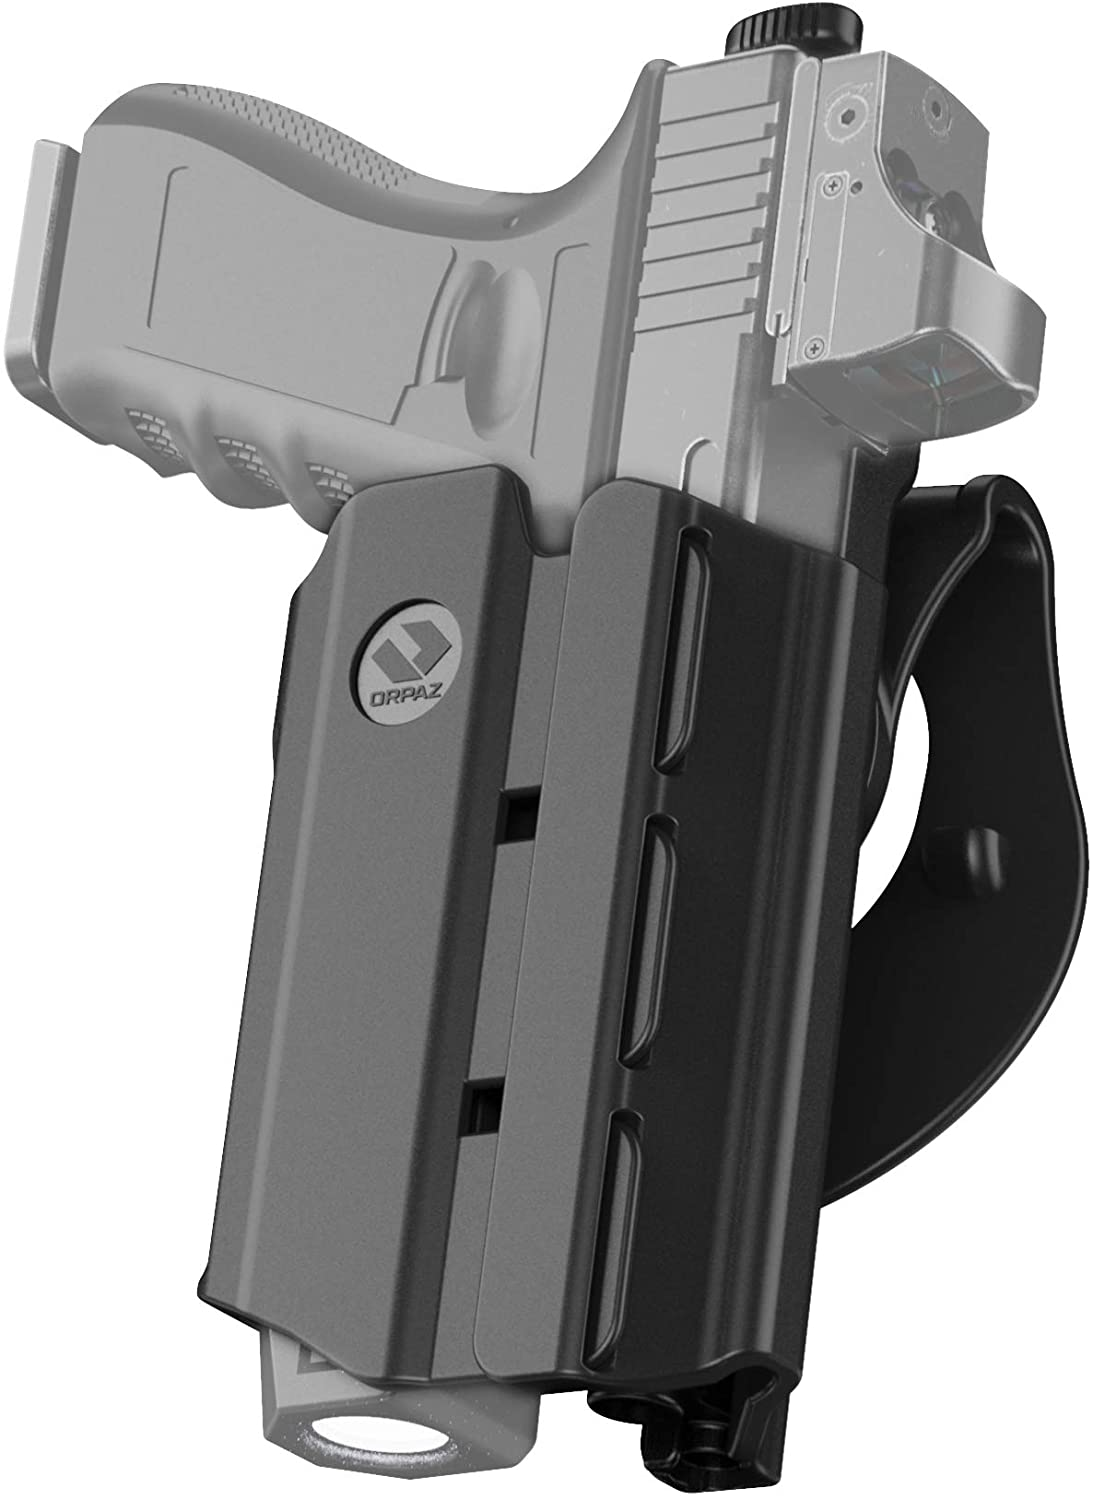 Orpaz Glock 30 Holster with Light, Glock 30 Light Bearing Holster with Paddle Attachment Compatible with Glock 30 Light/Laser/Sight/Optics